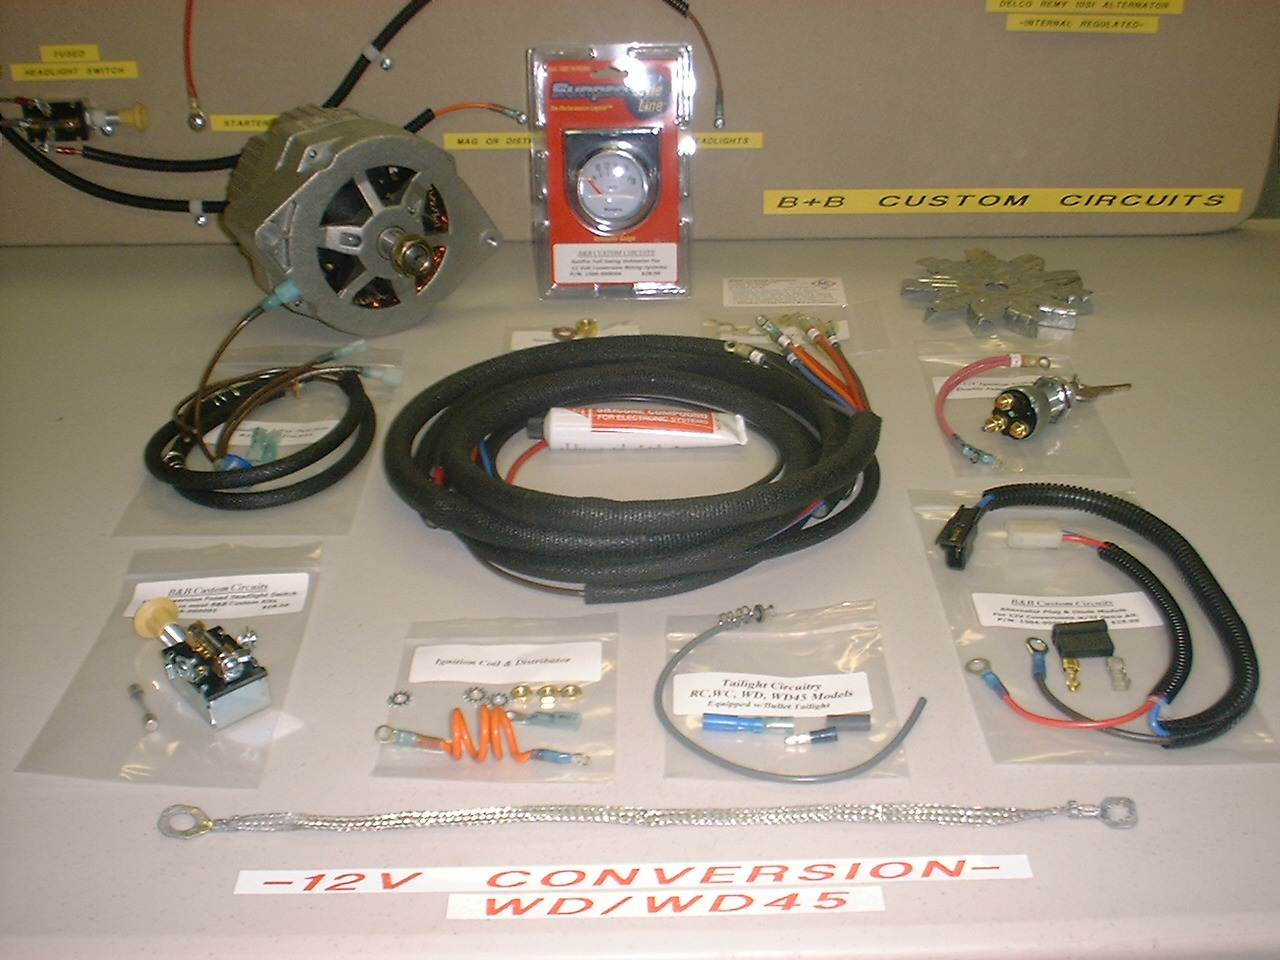 6 to 12 volt wiring on farmall tractors mo 2349  1950 8n ford tractor wiring diagram 6 volt besides ford  8n ford tractor wiring diagram 6 volt